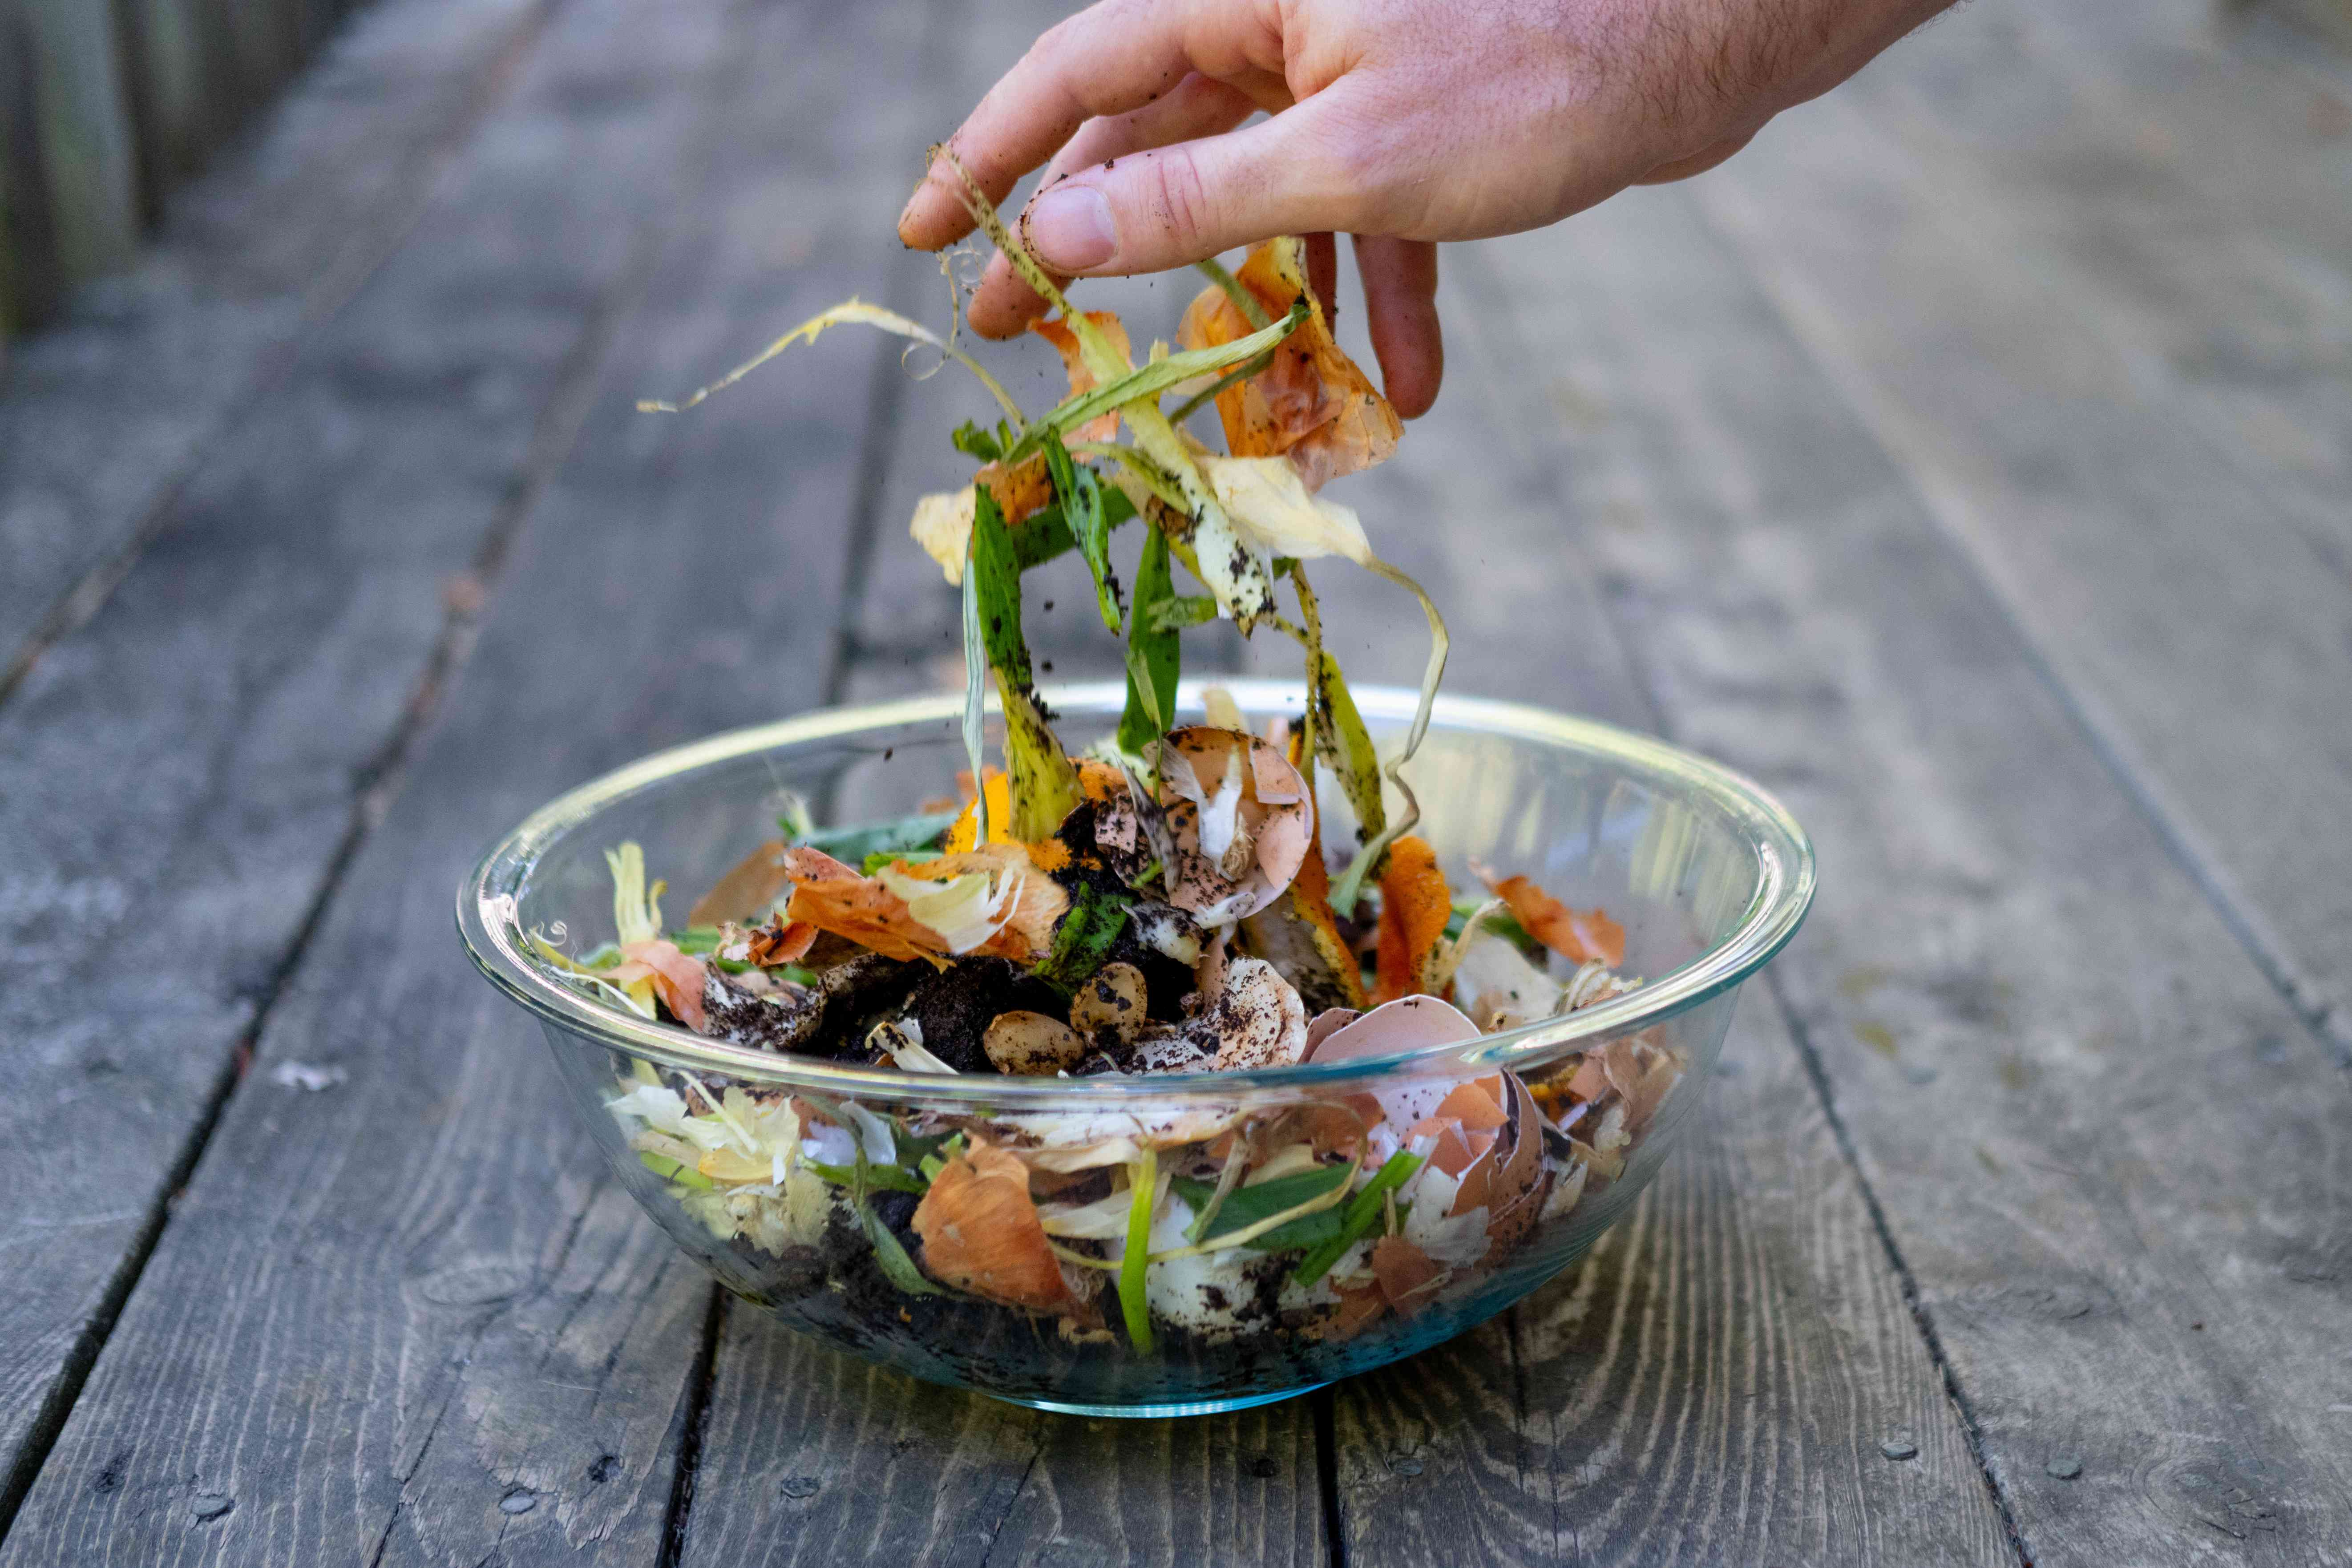 hands drop food scraps into a glass bowl for composting